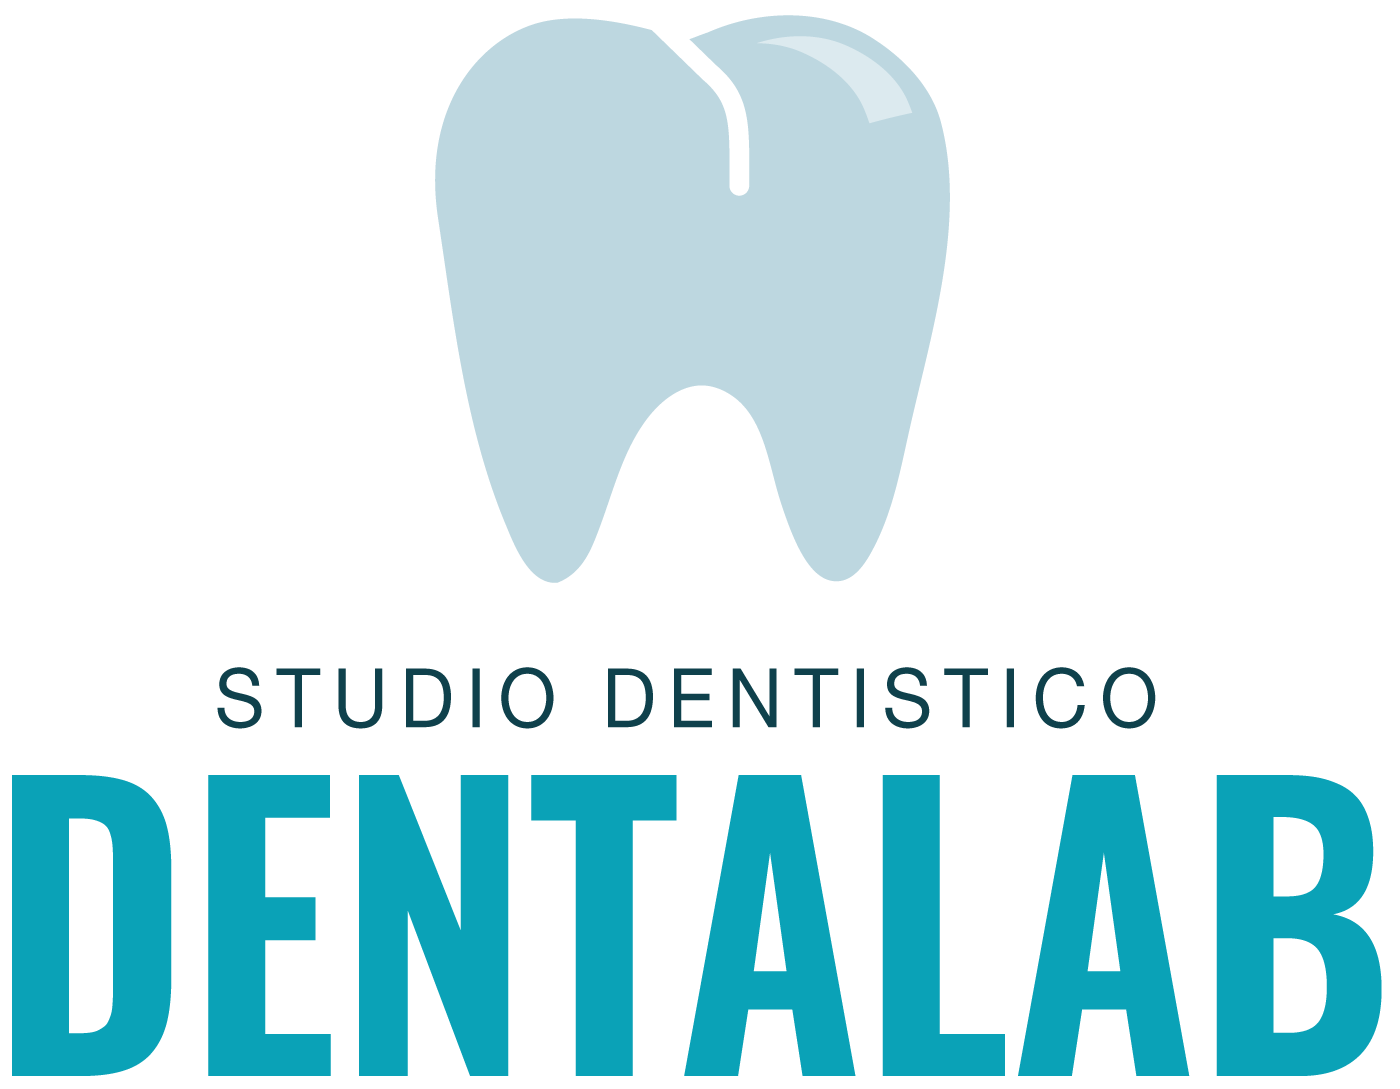 Studio Dentistico Collettivo Dentalab